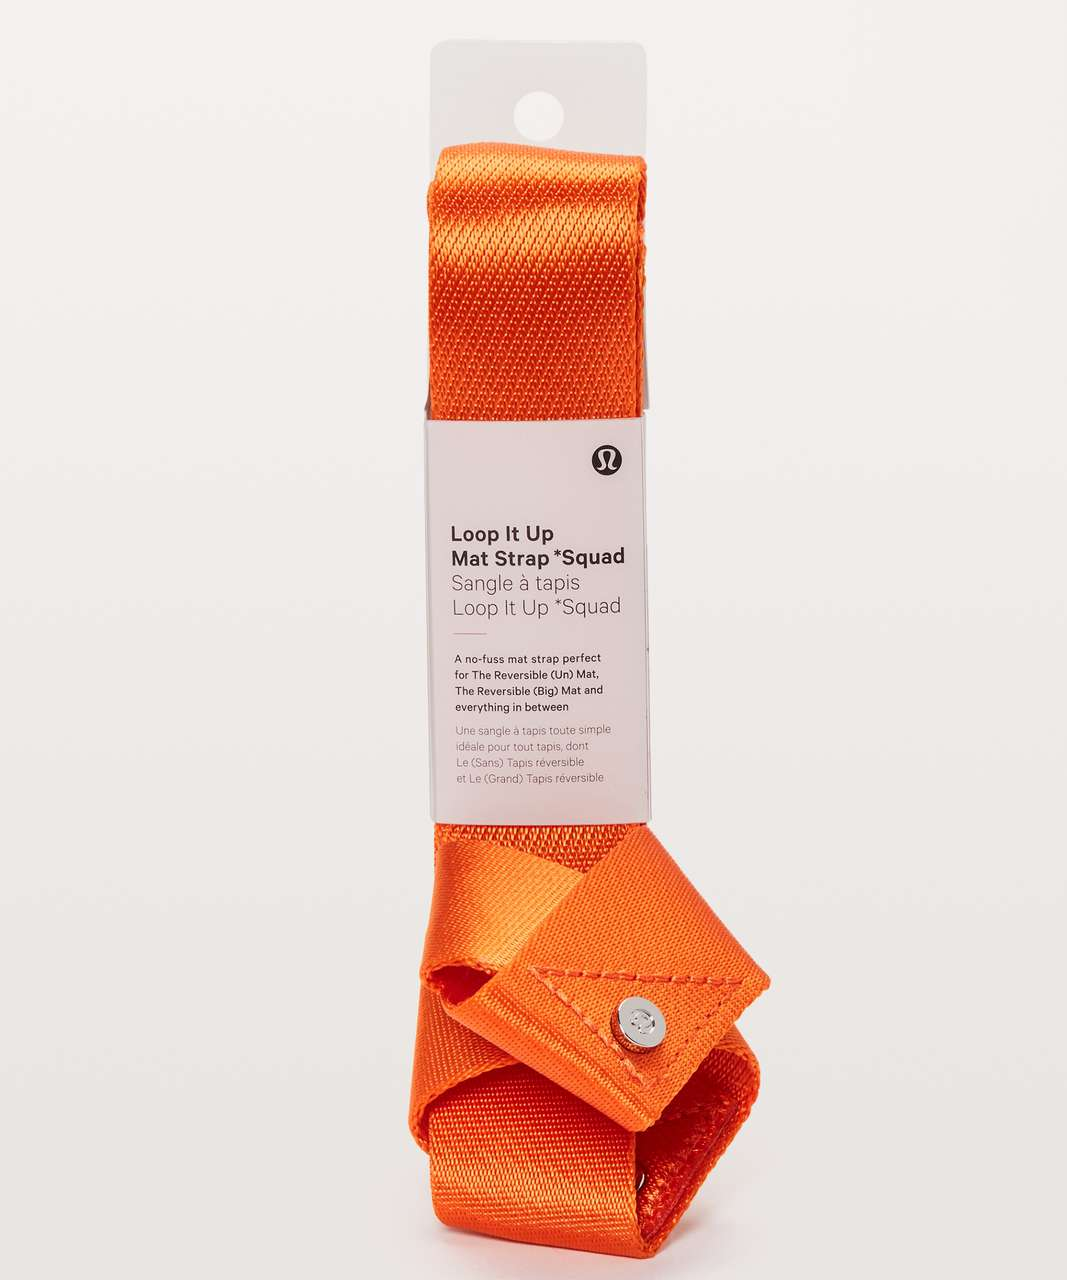 Lululemon Loop It Up Mat Strap *Squad - Orange Flash / Glossy